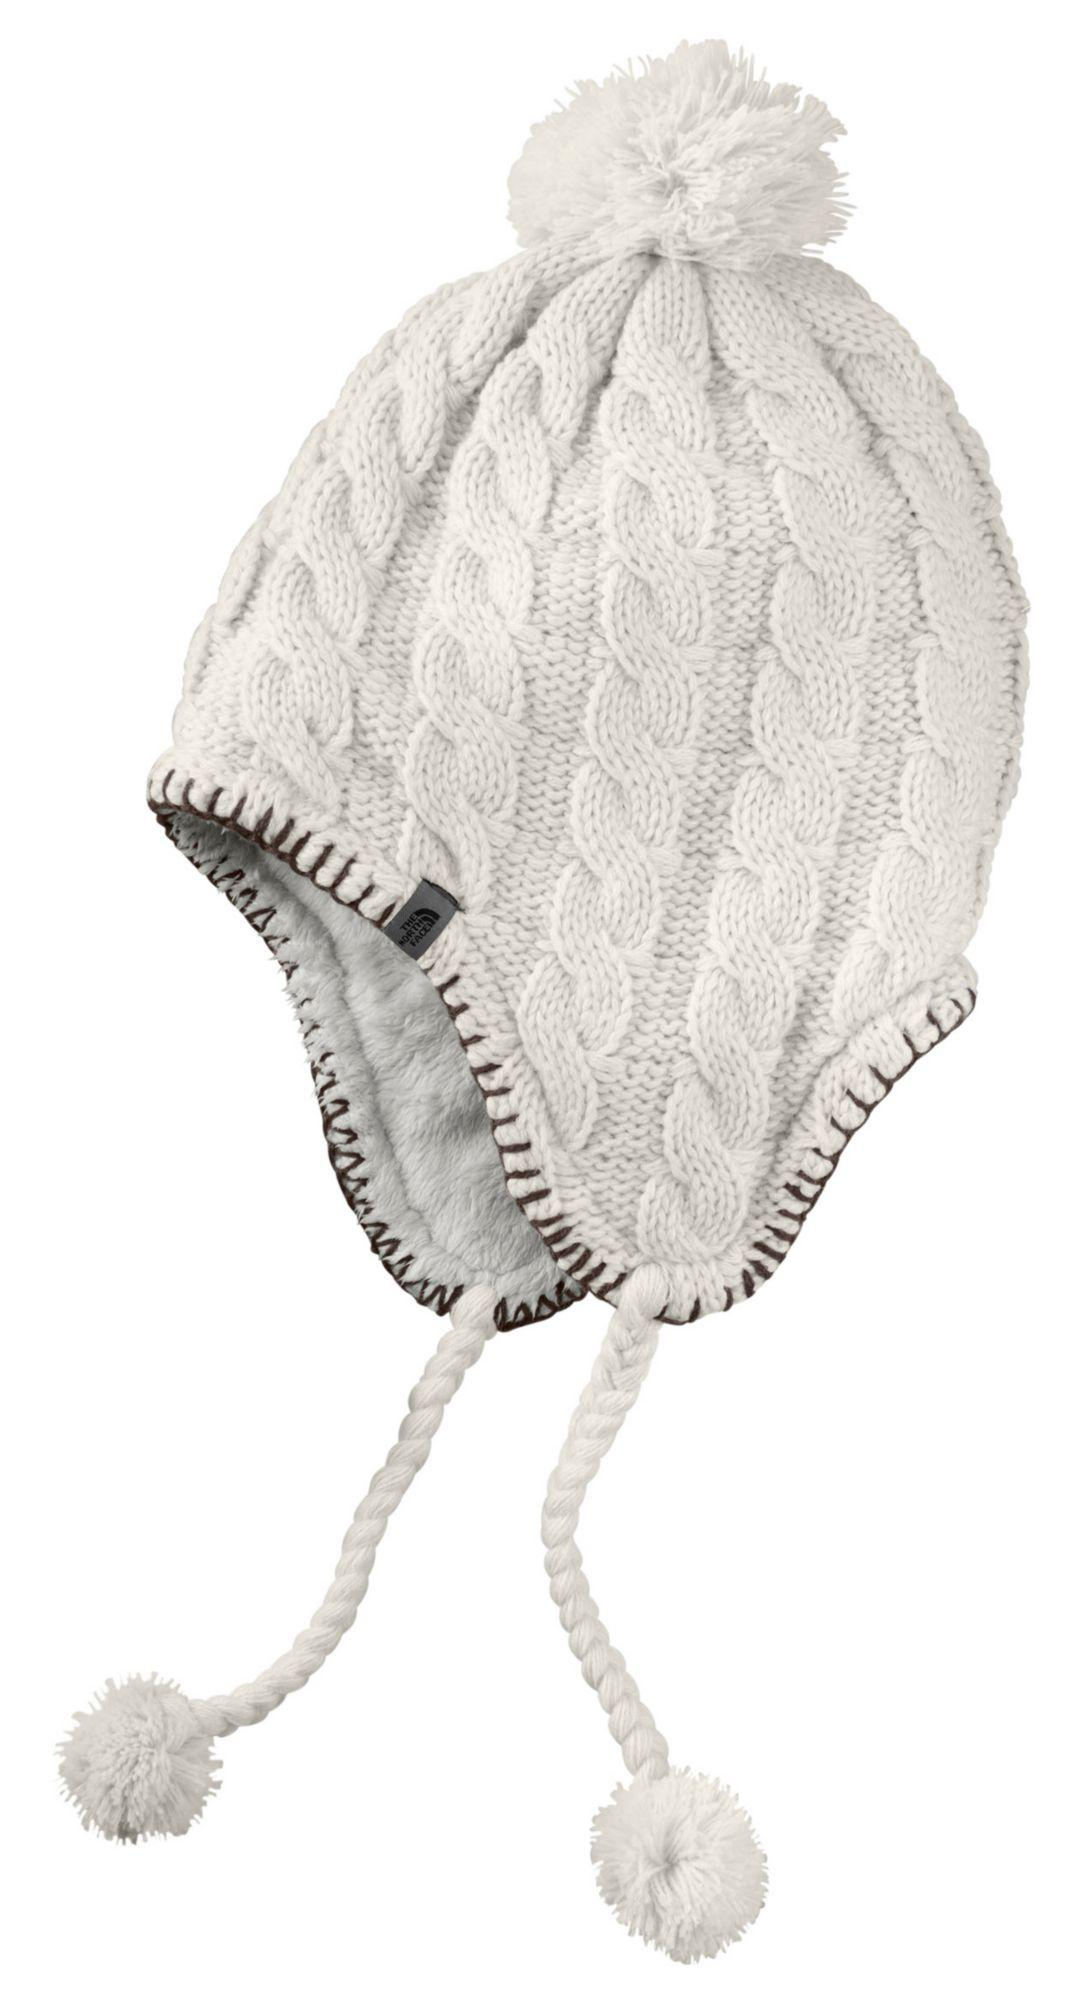 c77eca4dd8d Lyst - The North Face Fuzzy Earflap Beanie in White